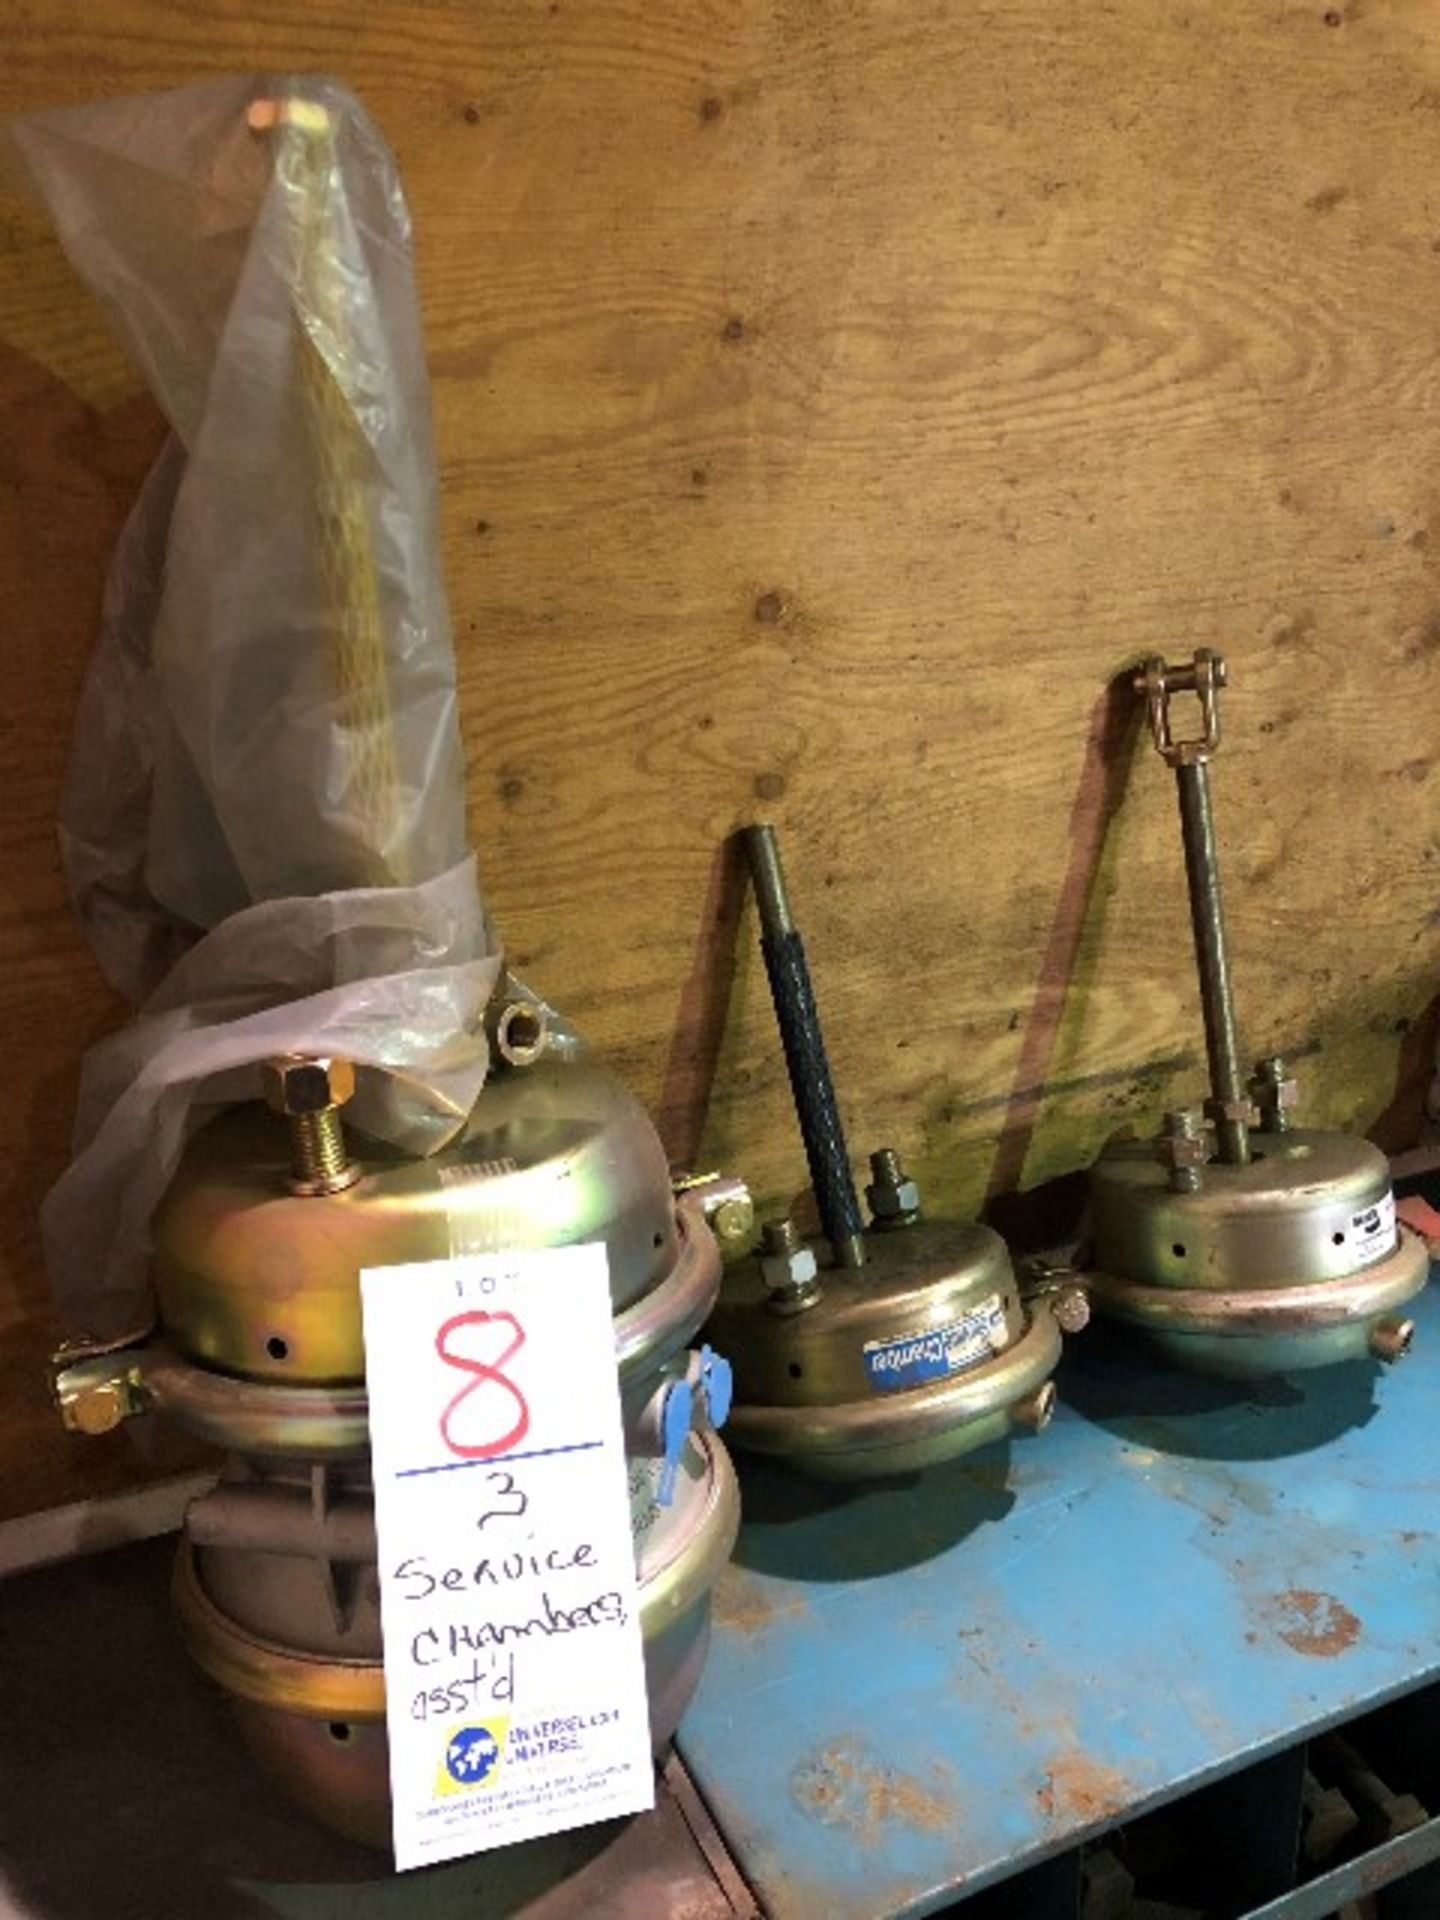 Lot 8 - Service chambers, assorted, 3 pcs